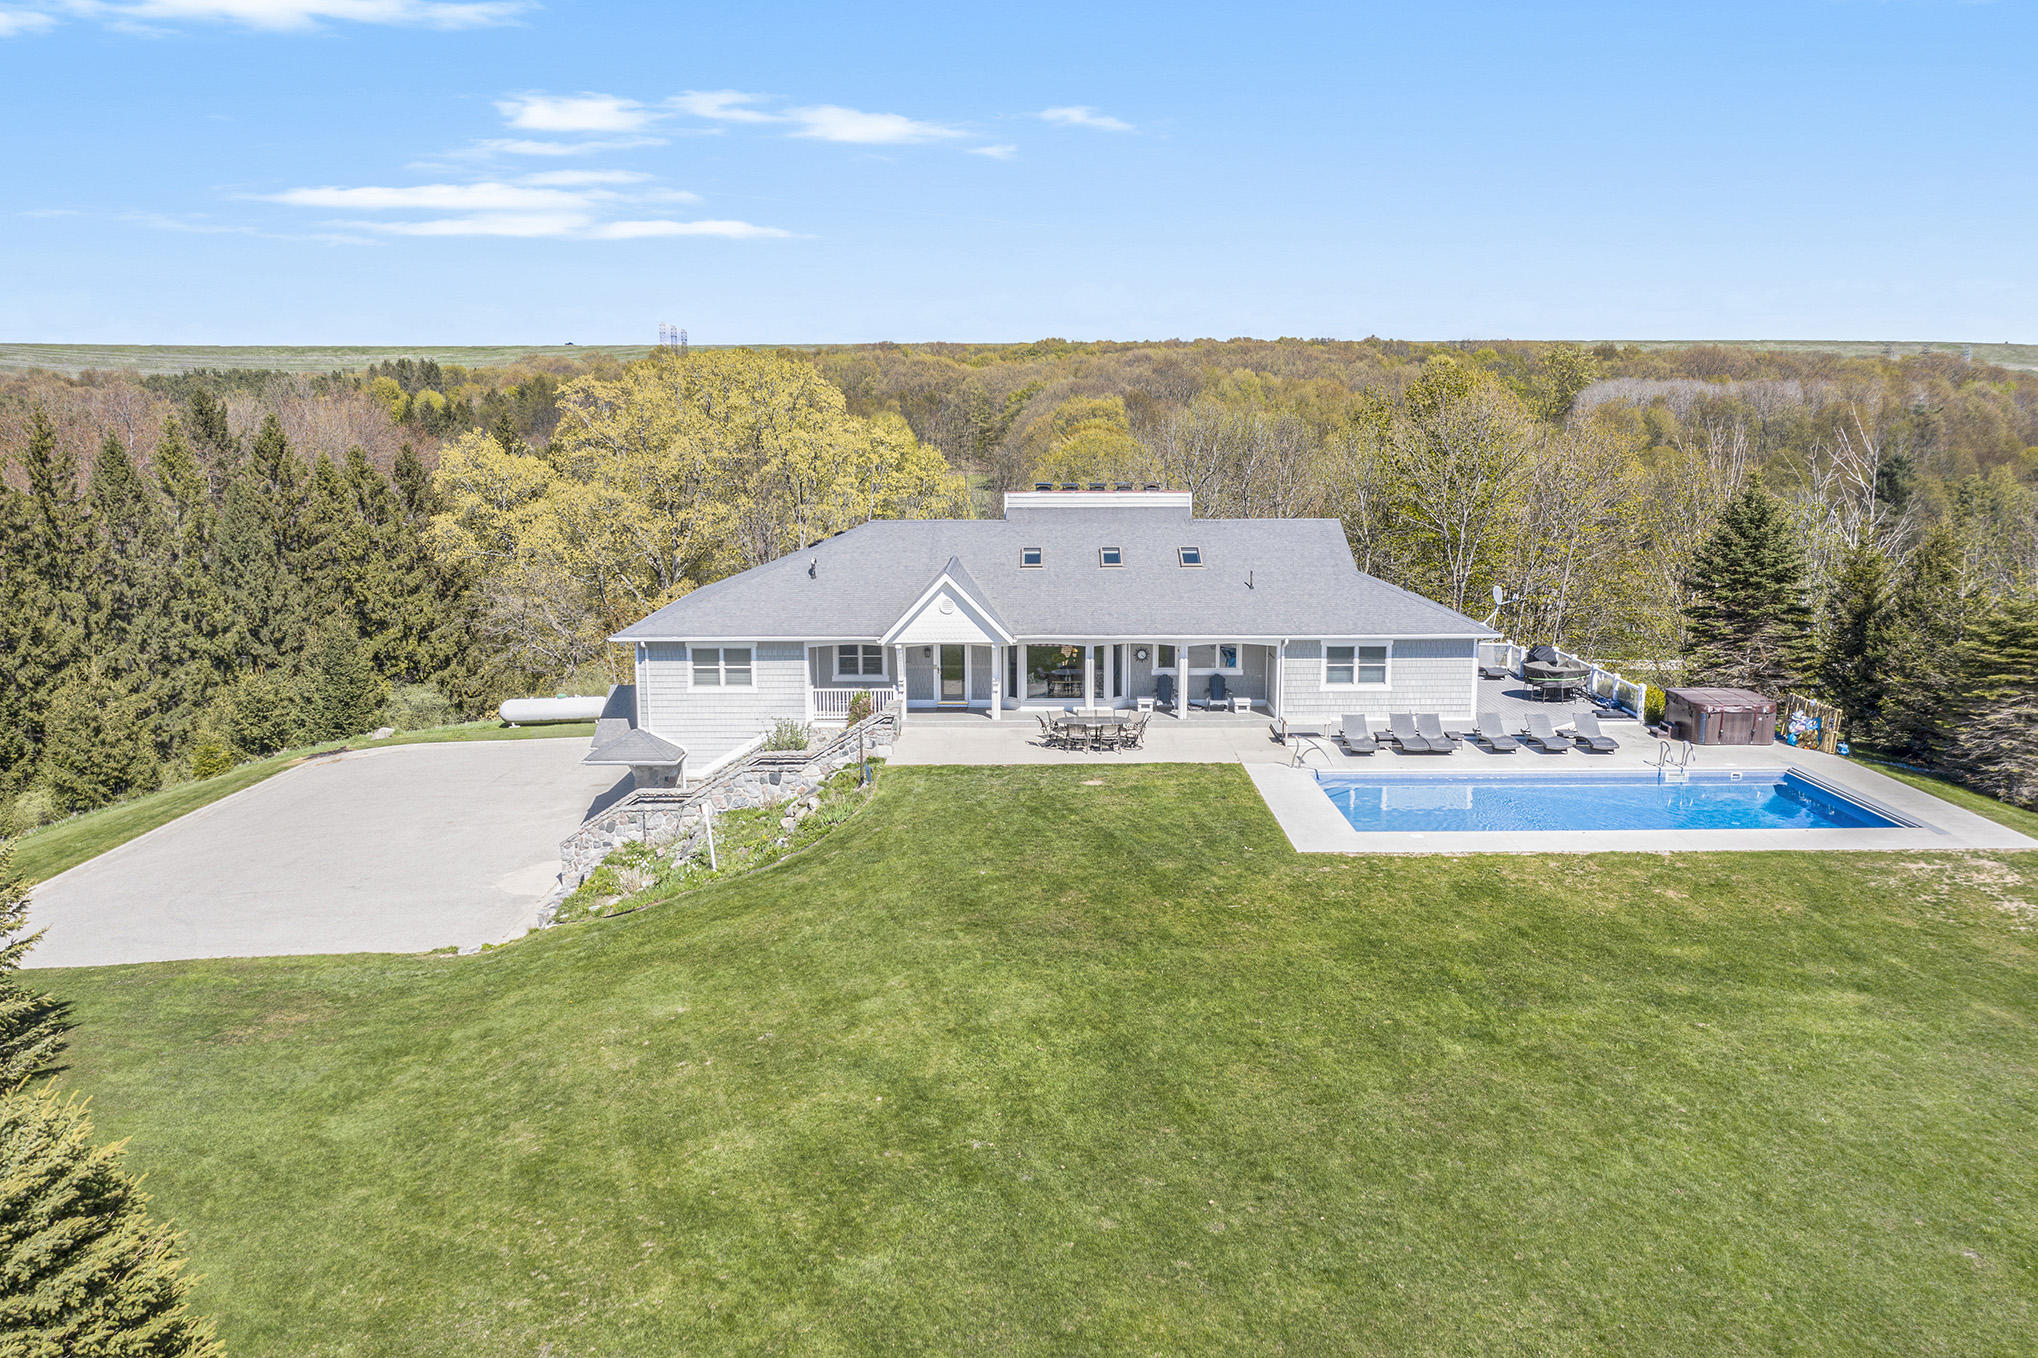 Gorgeous Lake Michigan retreat with 318 feet of frontage 7 acres located close to the towns of Ludington and Pentwater to enjoy marinas, restaurants, shopping, and all that the lakeshore has to offer. This home was custom built by a lumber baron and showcases true craftsmanship with redwood beams, pecan accent details, and old-world character that is rarely found. The Chef's kitchen offers, a copper hood over a cooktop, 4 ovens, ample cabinetry, fireplace, and views of the water from every angle. The main floor offers a four-season porch, dining, and beautiful brick fireplace in the living room perfect for cozy summer evenings after the sunset. With 4 bedrooms, including a master suite, complete with a custom closet, there is You will love the lower level ready for entertaining with an additional Double-sided fireplace offering ambiance in both the recreation area and the billiards room near the wet bar perfect for guests to enjoy refreshments after a day at the pool. Don't miss the sauna and fitness rooms. The spacious in-ground pool that is easy to maintain and offers expansive views of Lake Michigan. This one-of-a-kind offering is waiting for new owners for either rental/investment opportunity or as a personal get-a-way or primary home. Rated #1 by GRKids.com for Best Summer Vacation Rental!! Call today for your private showing and get ready to relax and enjoy the views! Sale to include parcels 014-110-021-00 & 014-110-004-51